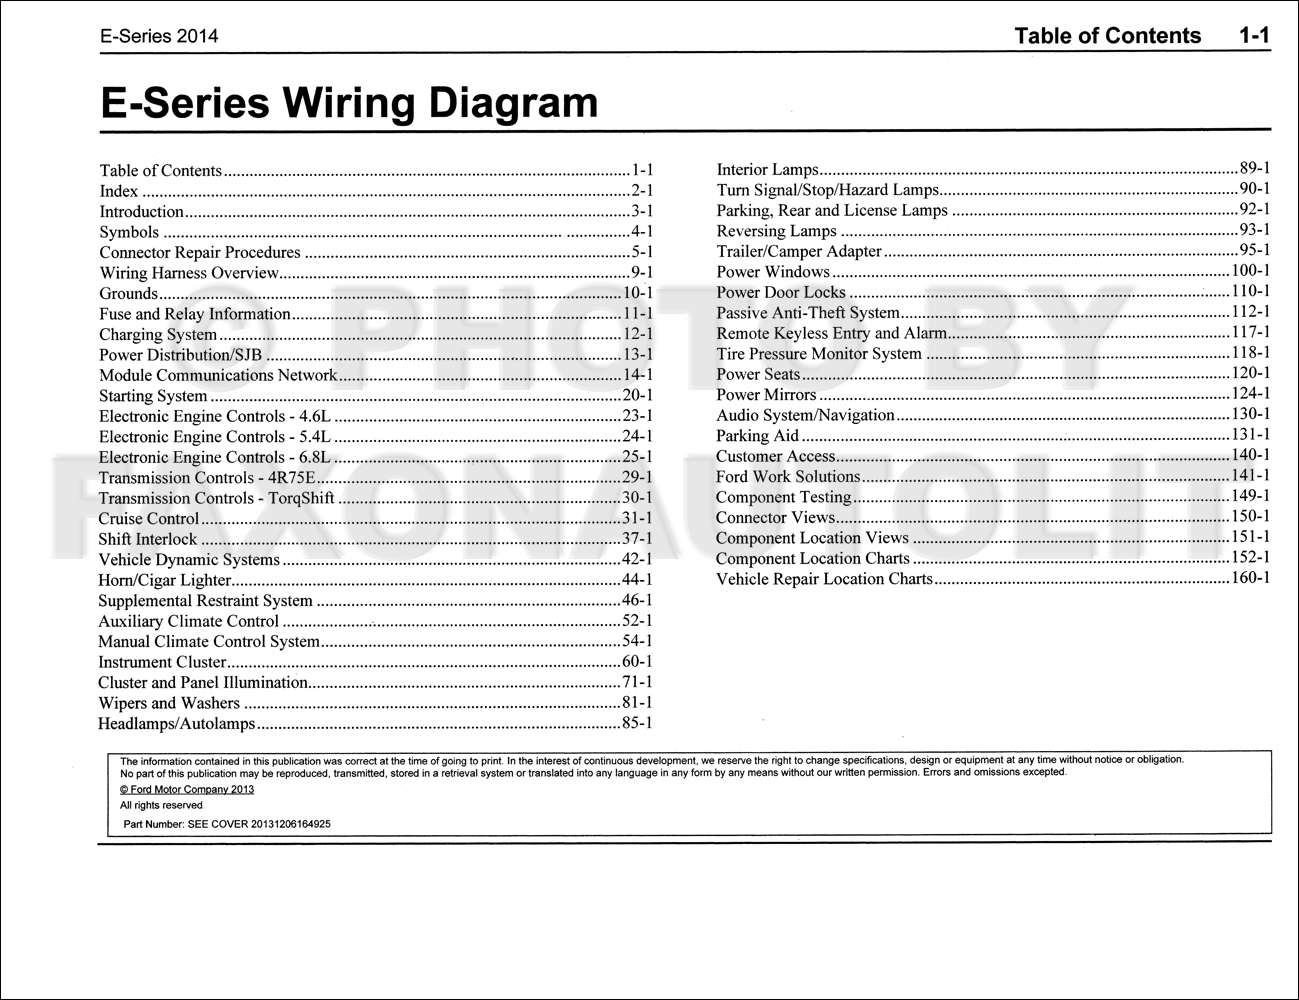 2014FordEconolineOWD TOC 2014 ford econoline wiring diagram manual original van e150 e250 2014 ford fiesta wiring diagram at gsmportal.co